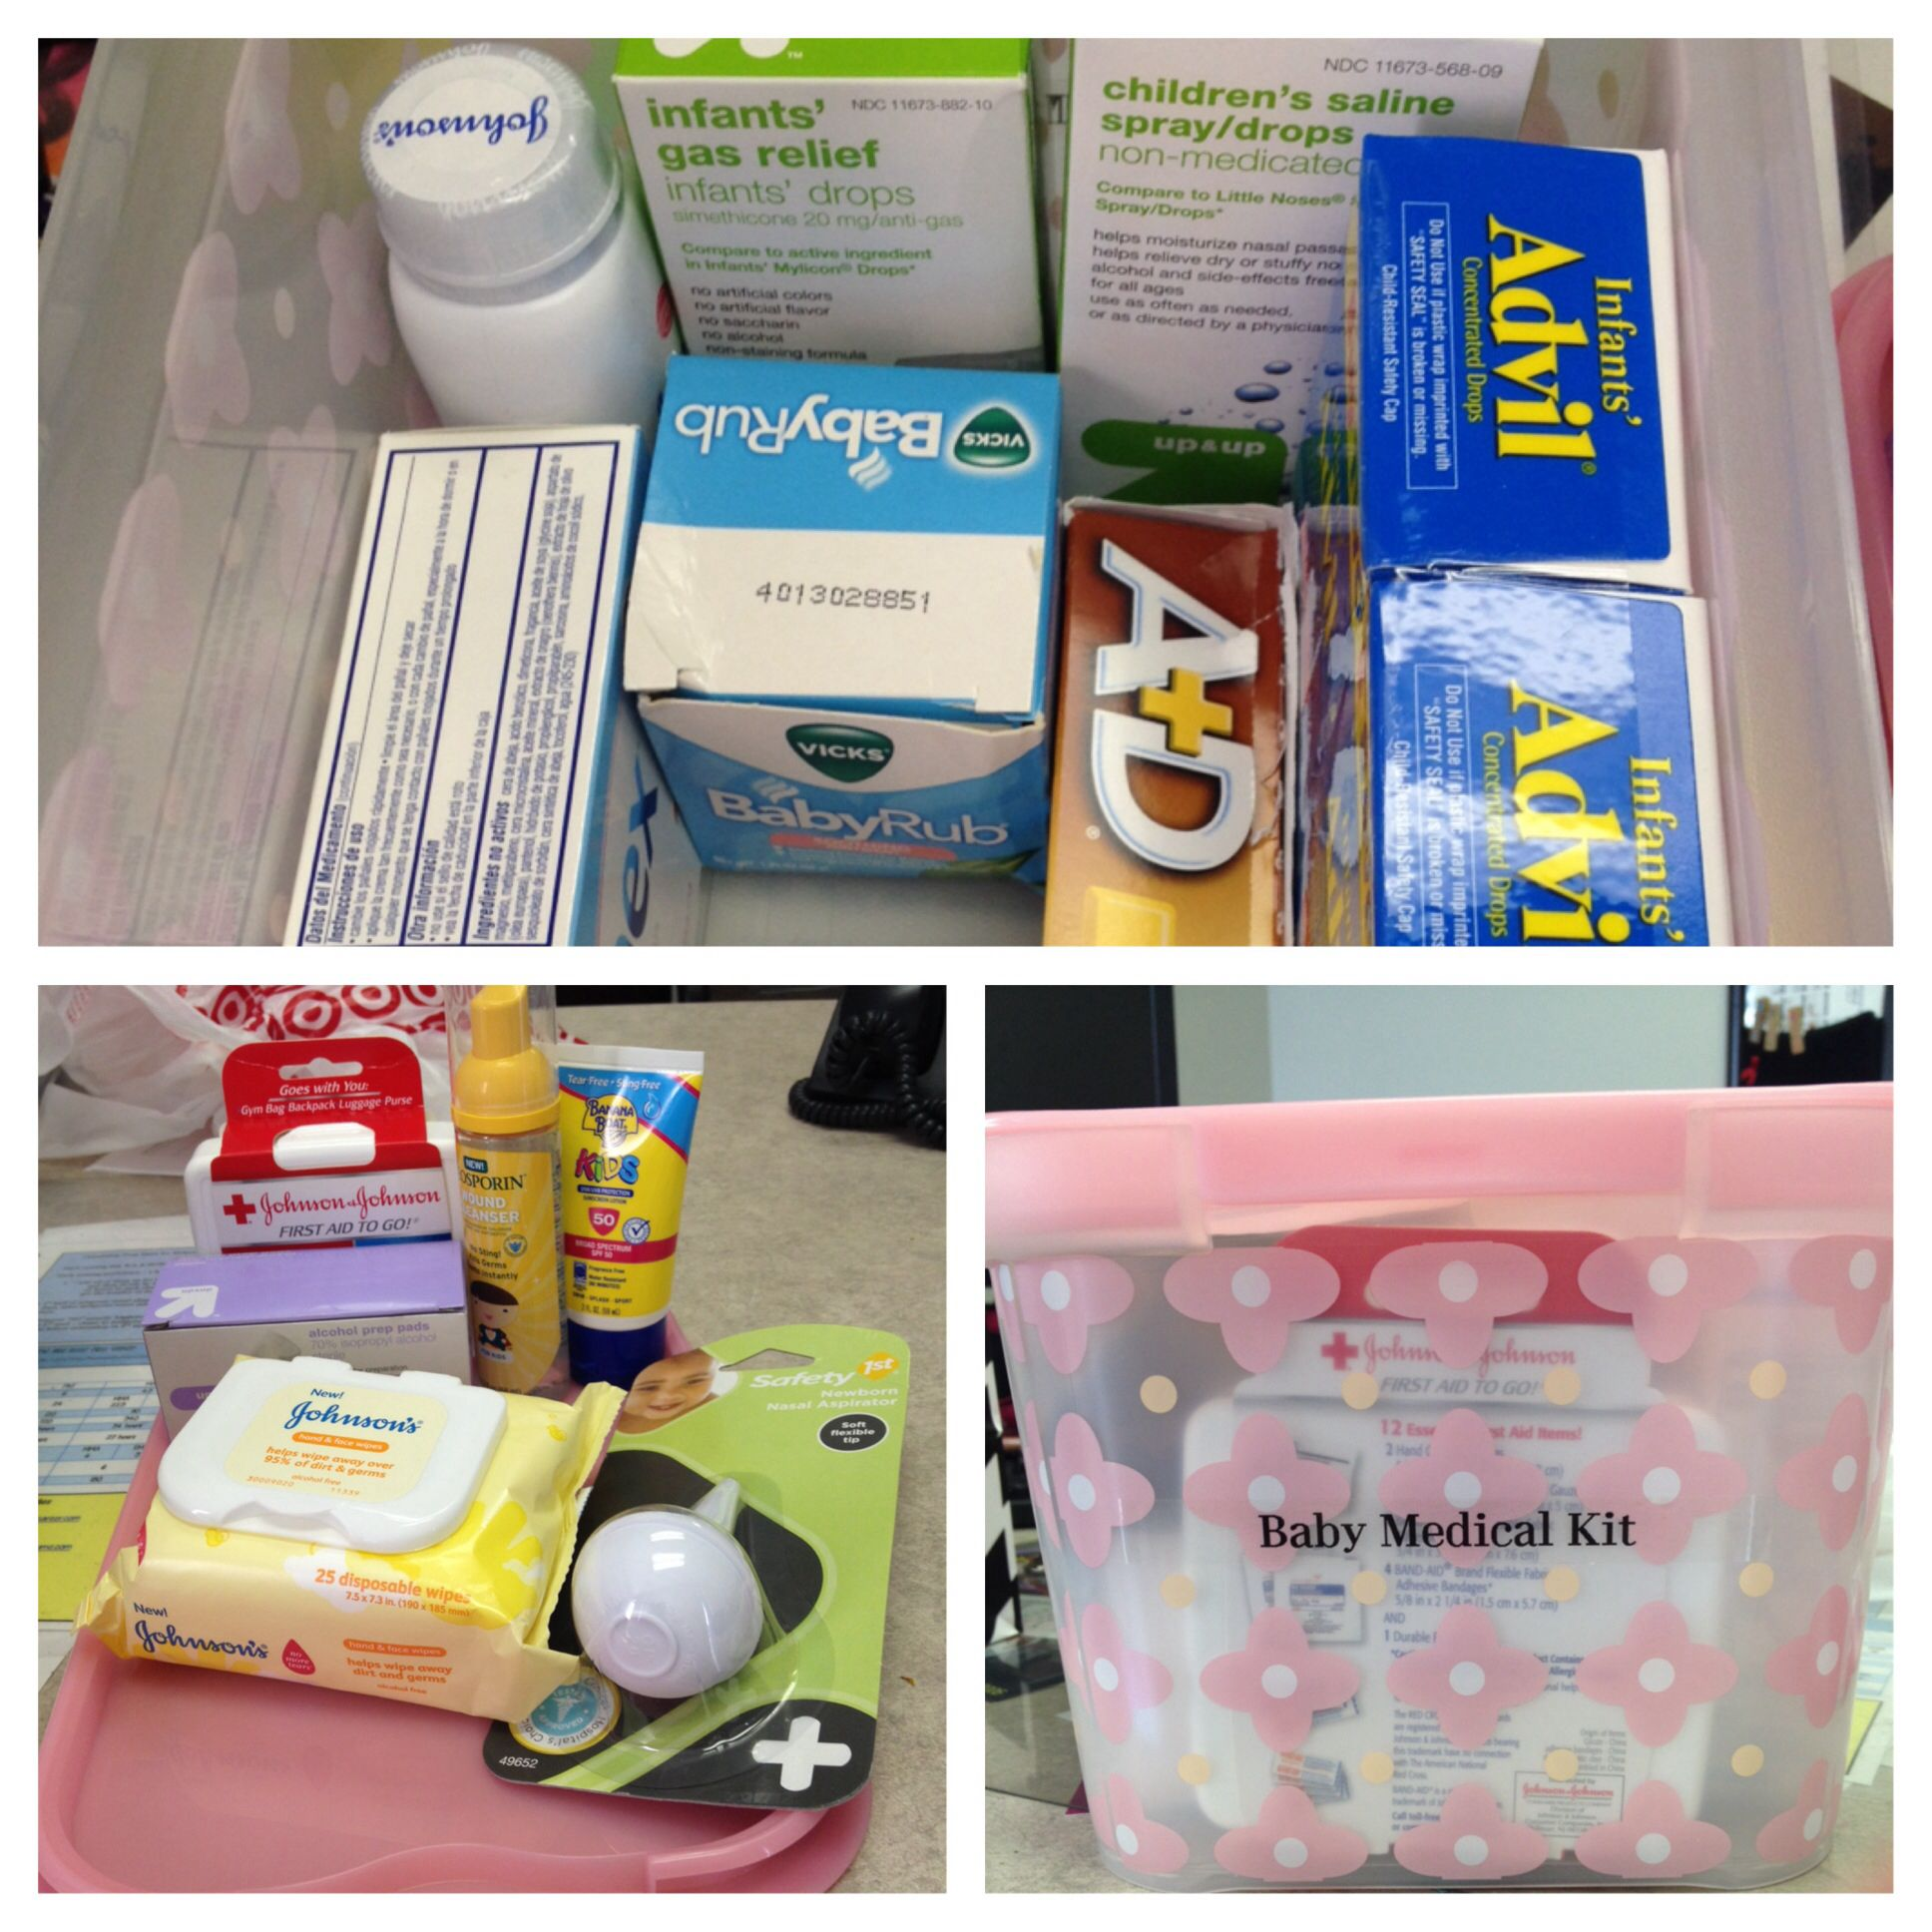 Baby shower t idea baby medical kit Include infant Tylenol